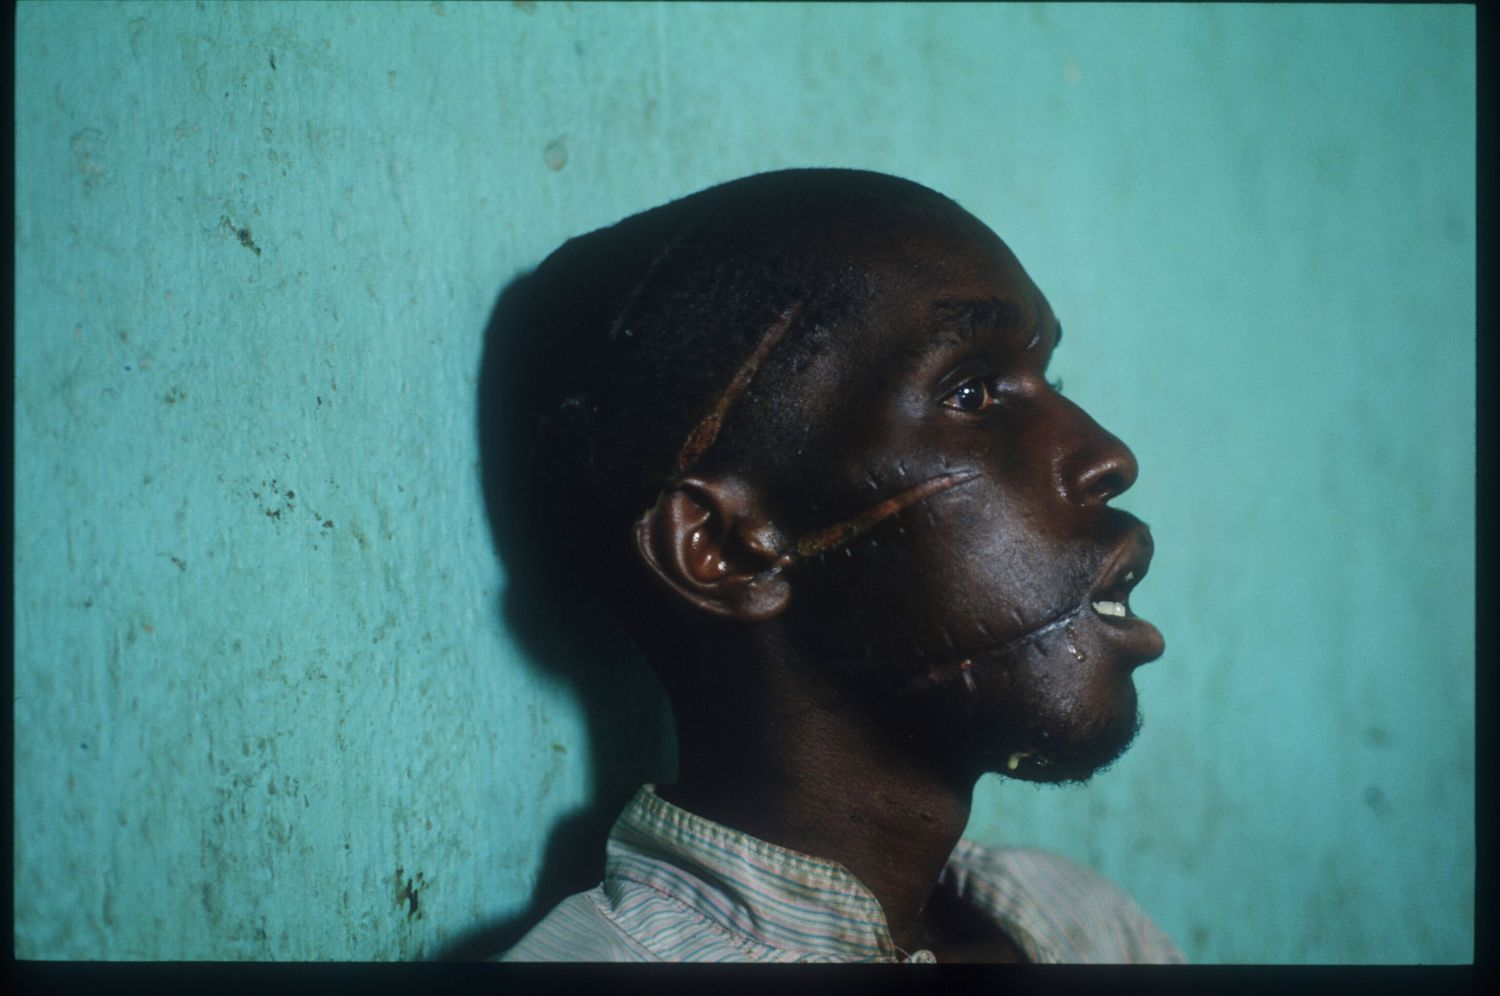 221260 12: An unidentified Tutsi man displays slashes on his face and head June 3, 1994 in Rwanda. The Tutsis entered Rwanda from exile in Uganda after the genocide of their people. (Photo by Scott Peterson/Liaison)